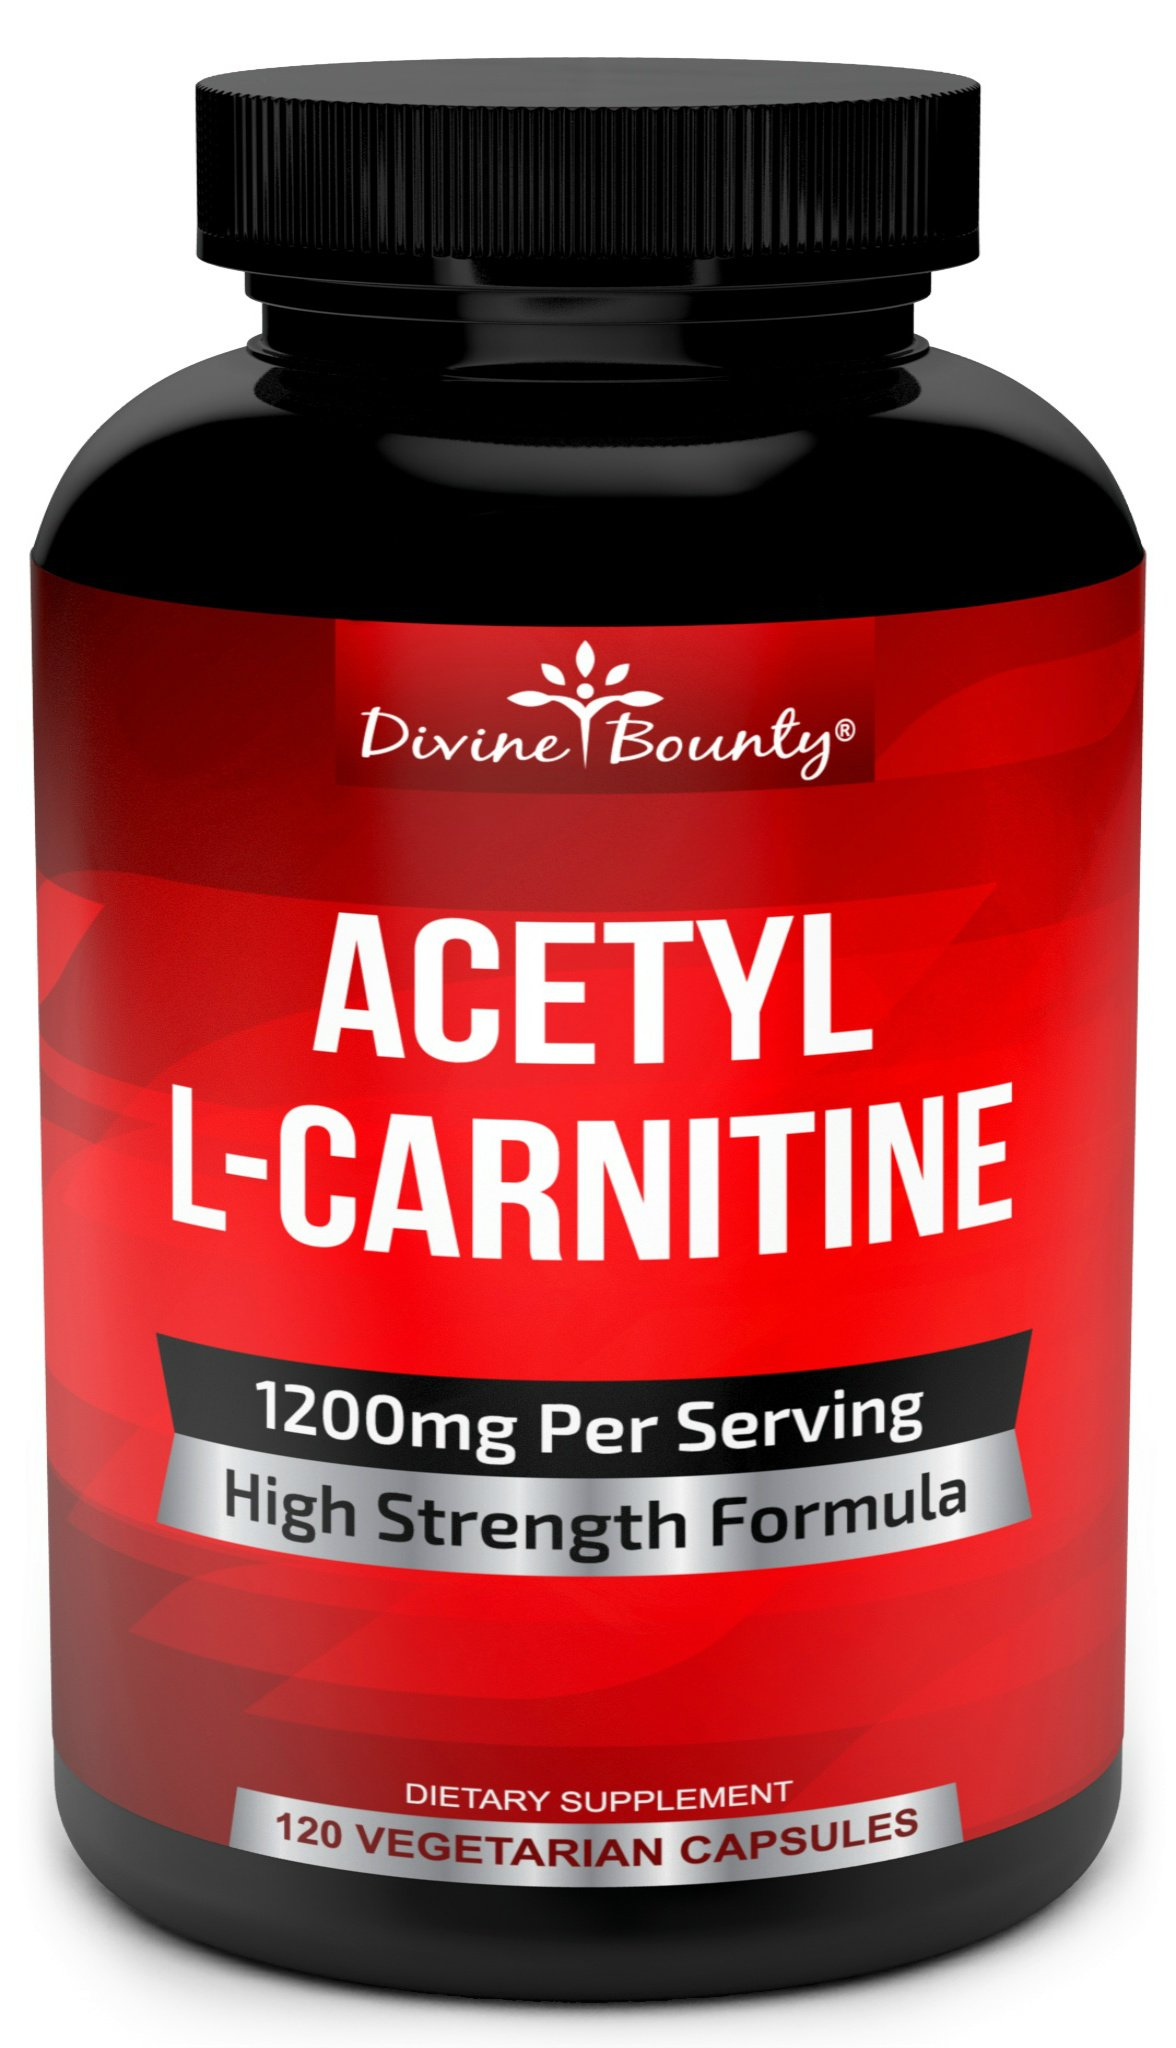 Xterra Paddle Boards >> Acetyl L-Carnitine Capsules 1200mg Per Serving - L Carnitine Supplement 120 Vegetarian Capsules ...